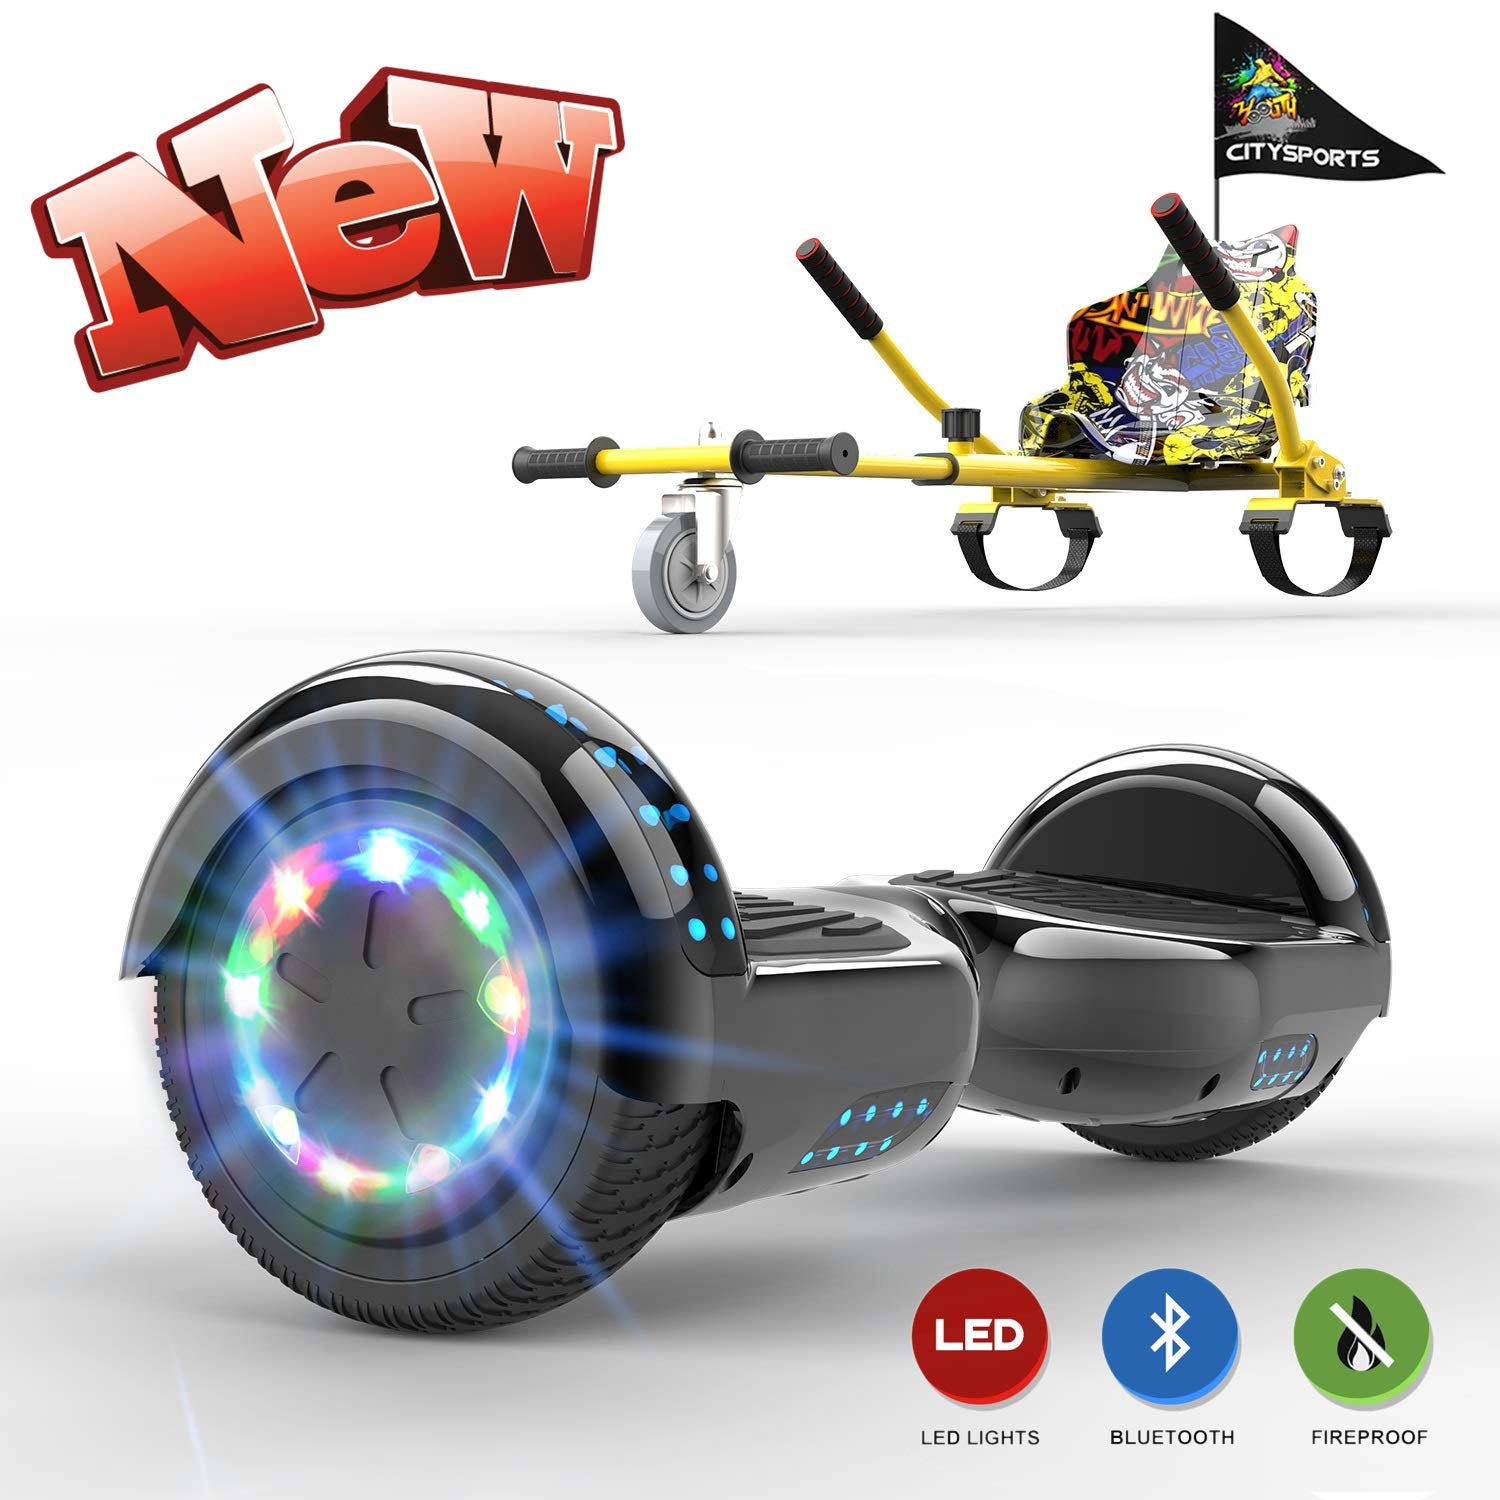 GeekMe Hoverboards with seat,Hoverboards with hoverkart,Hoverbaord seat go kart,Hoverboards LED Lights-Bluetooth Speaker-Flashing Wheels, Gift for Children